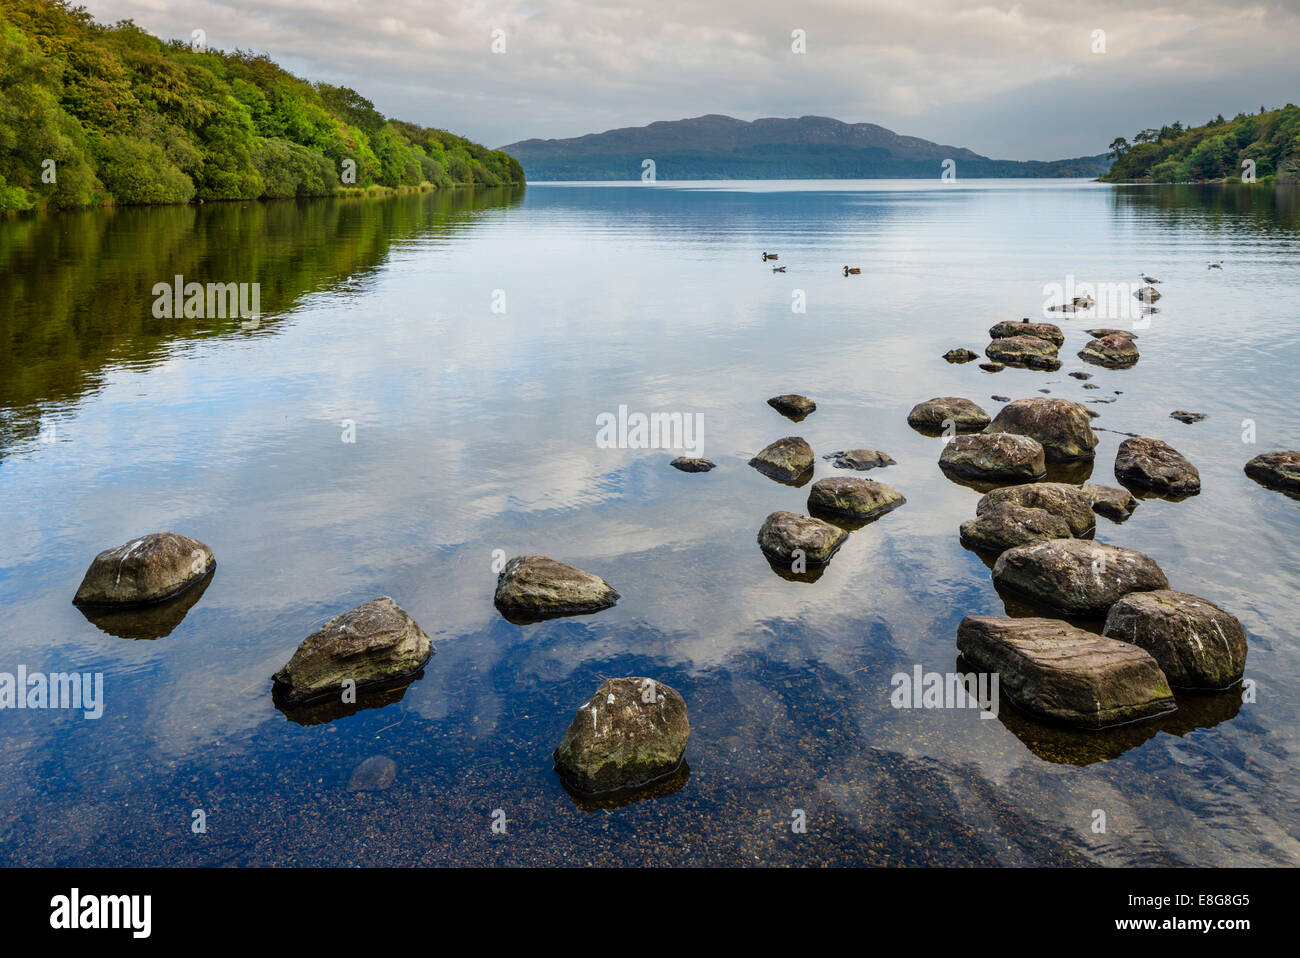 Lough Gill from Hazlewood Forest Recreation area in the early evening, Sligo, County Sligo, Republic of Ireland - Stock Image